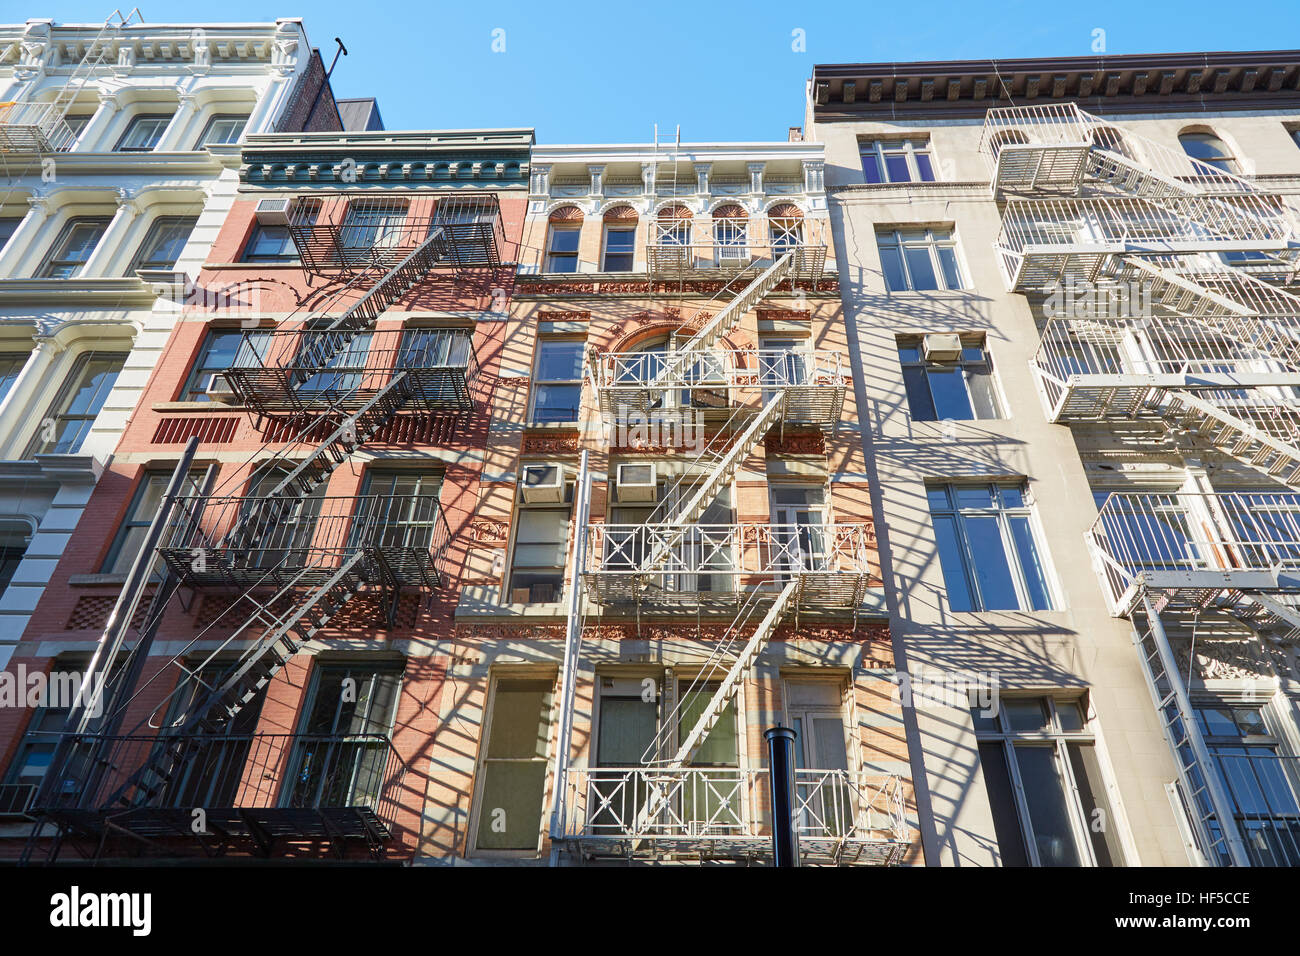 metal fire escape stairs manhattan stockfotos metal fire escape stairs manhattan bilder alamy. Black Bedroom Furniture Sets. Home Design Ideas